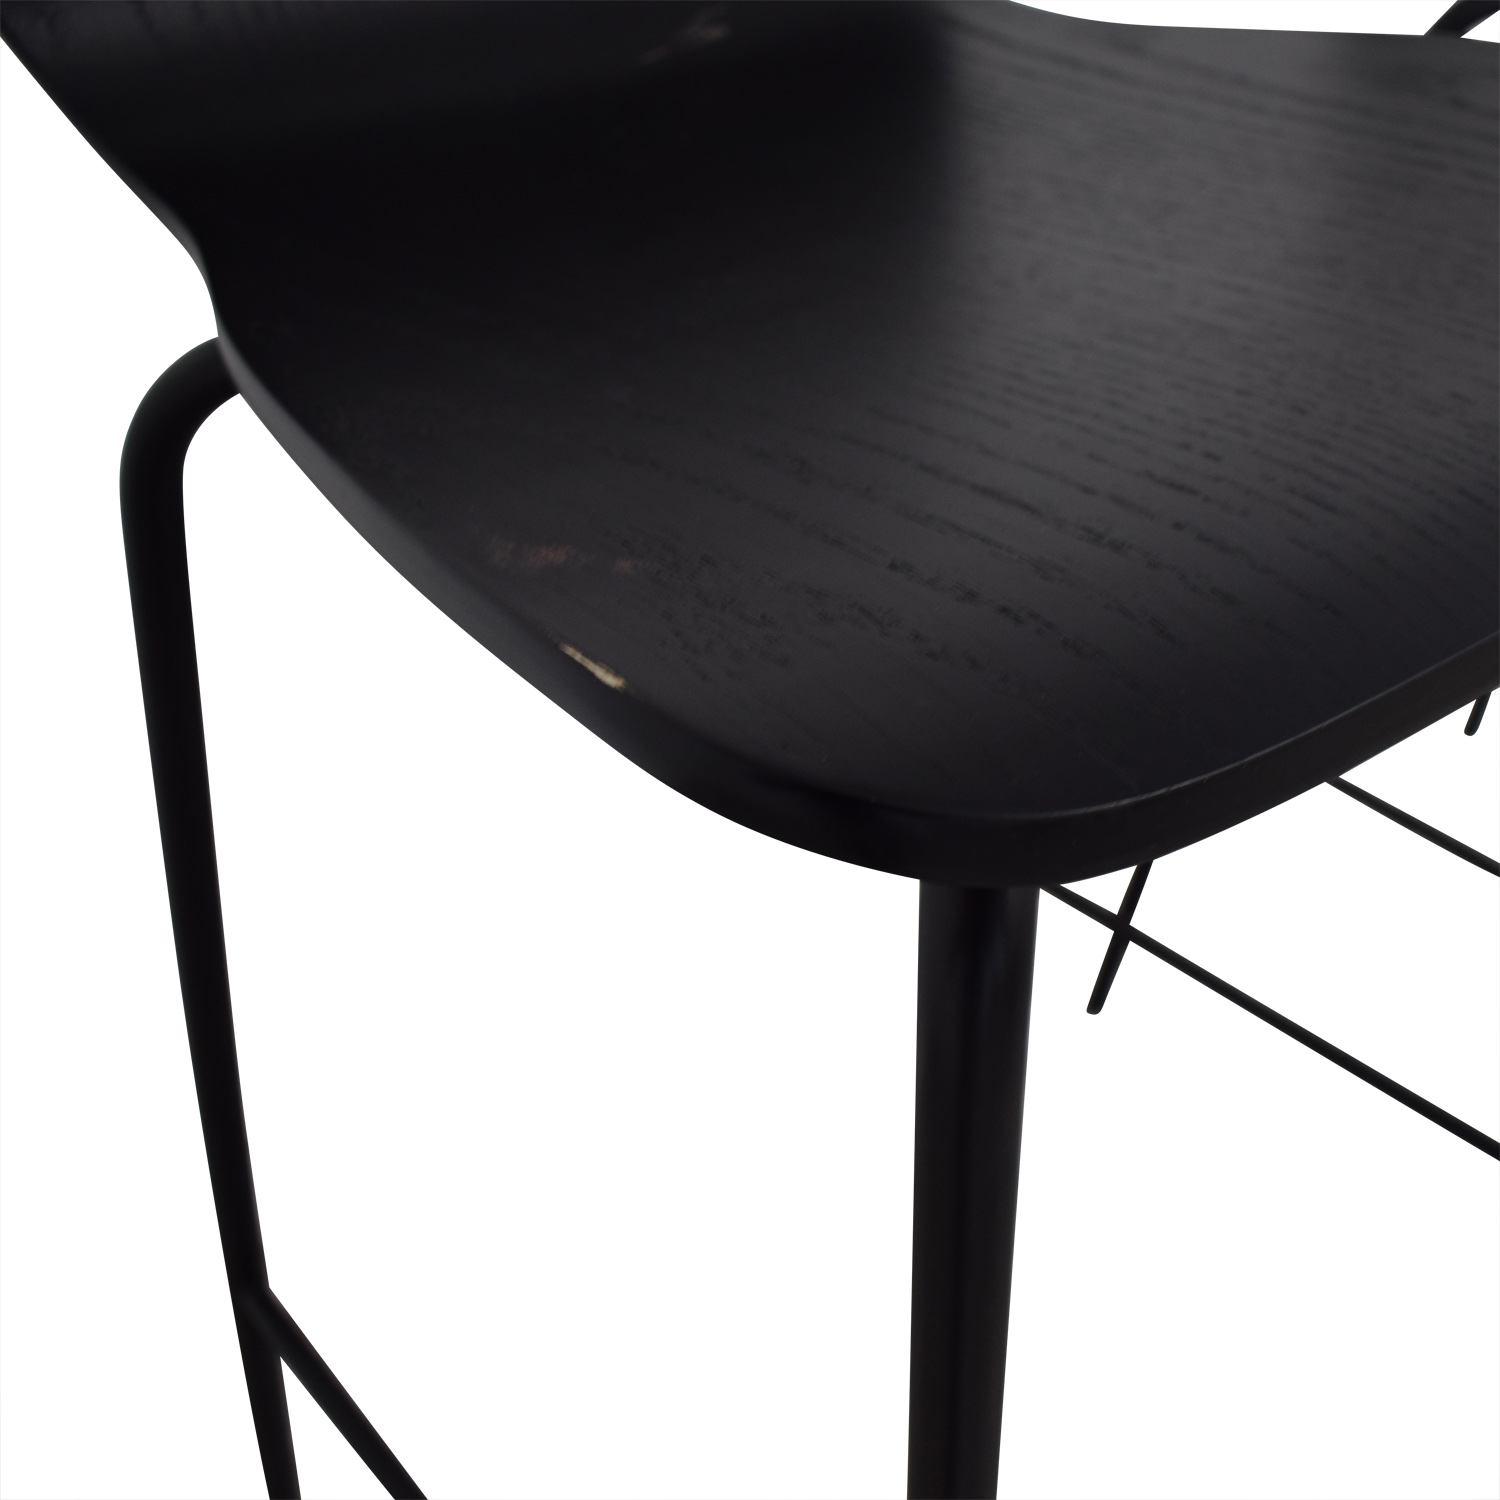 buy Crate & Barrel Felix Black Counter Stools Crate & Barrel